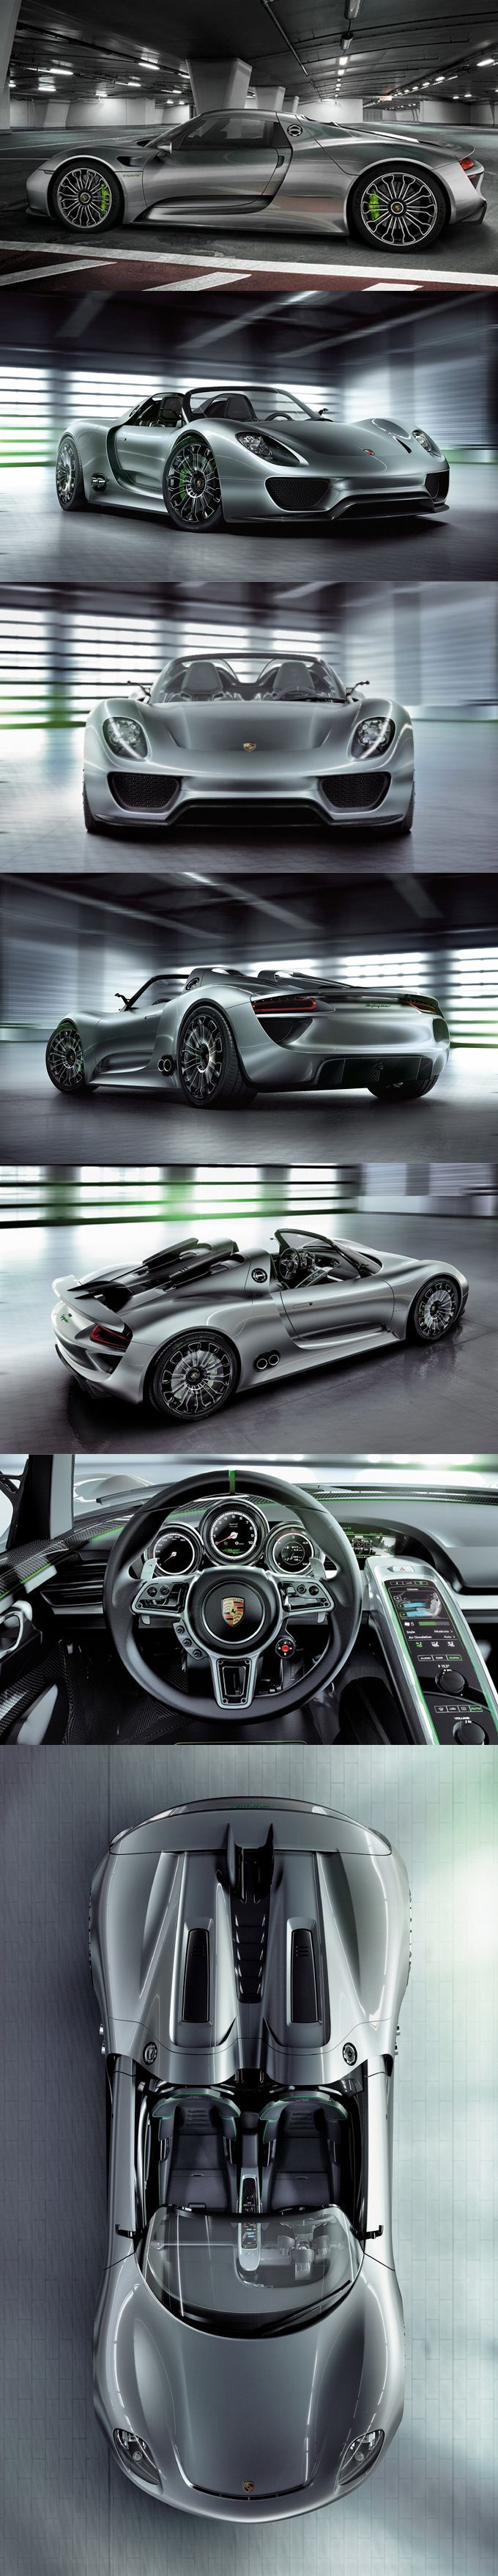 97979393df4e78c5c7bebf0c7550b6d7--porsche--germany Fabulous Need for Speed Most Wanted 2012 Porsche 918 Spyder Concept Location Cars Trend